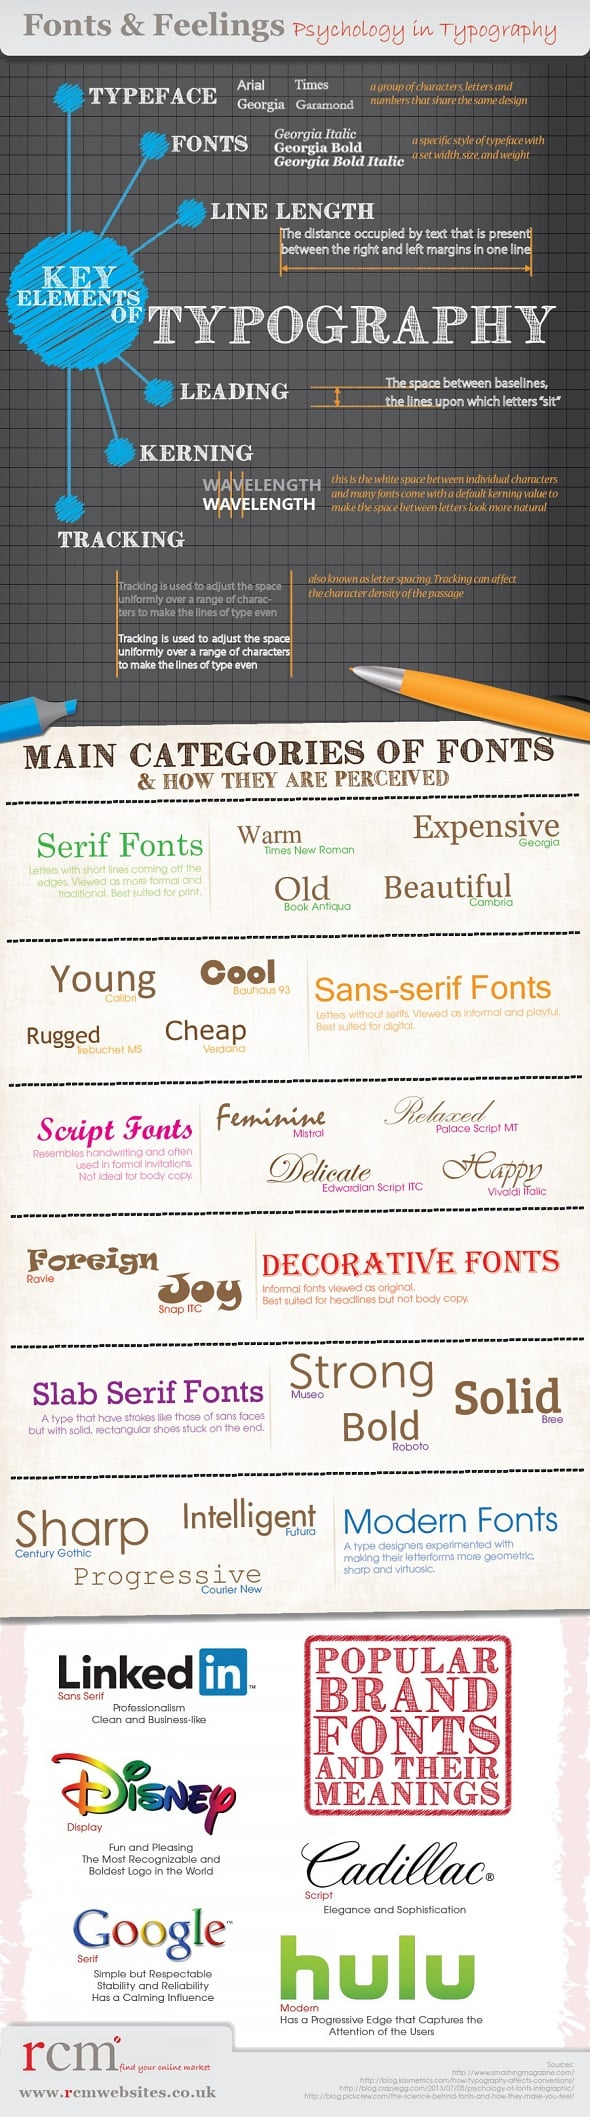 Key Elements of Typography